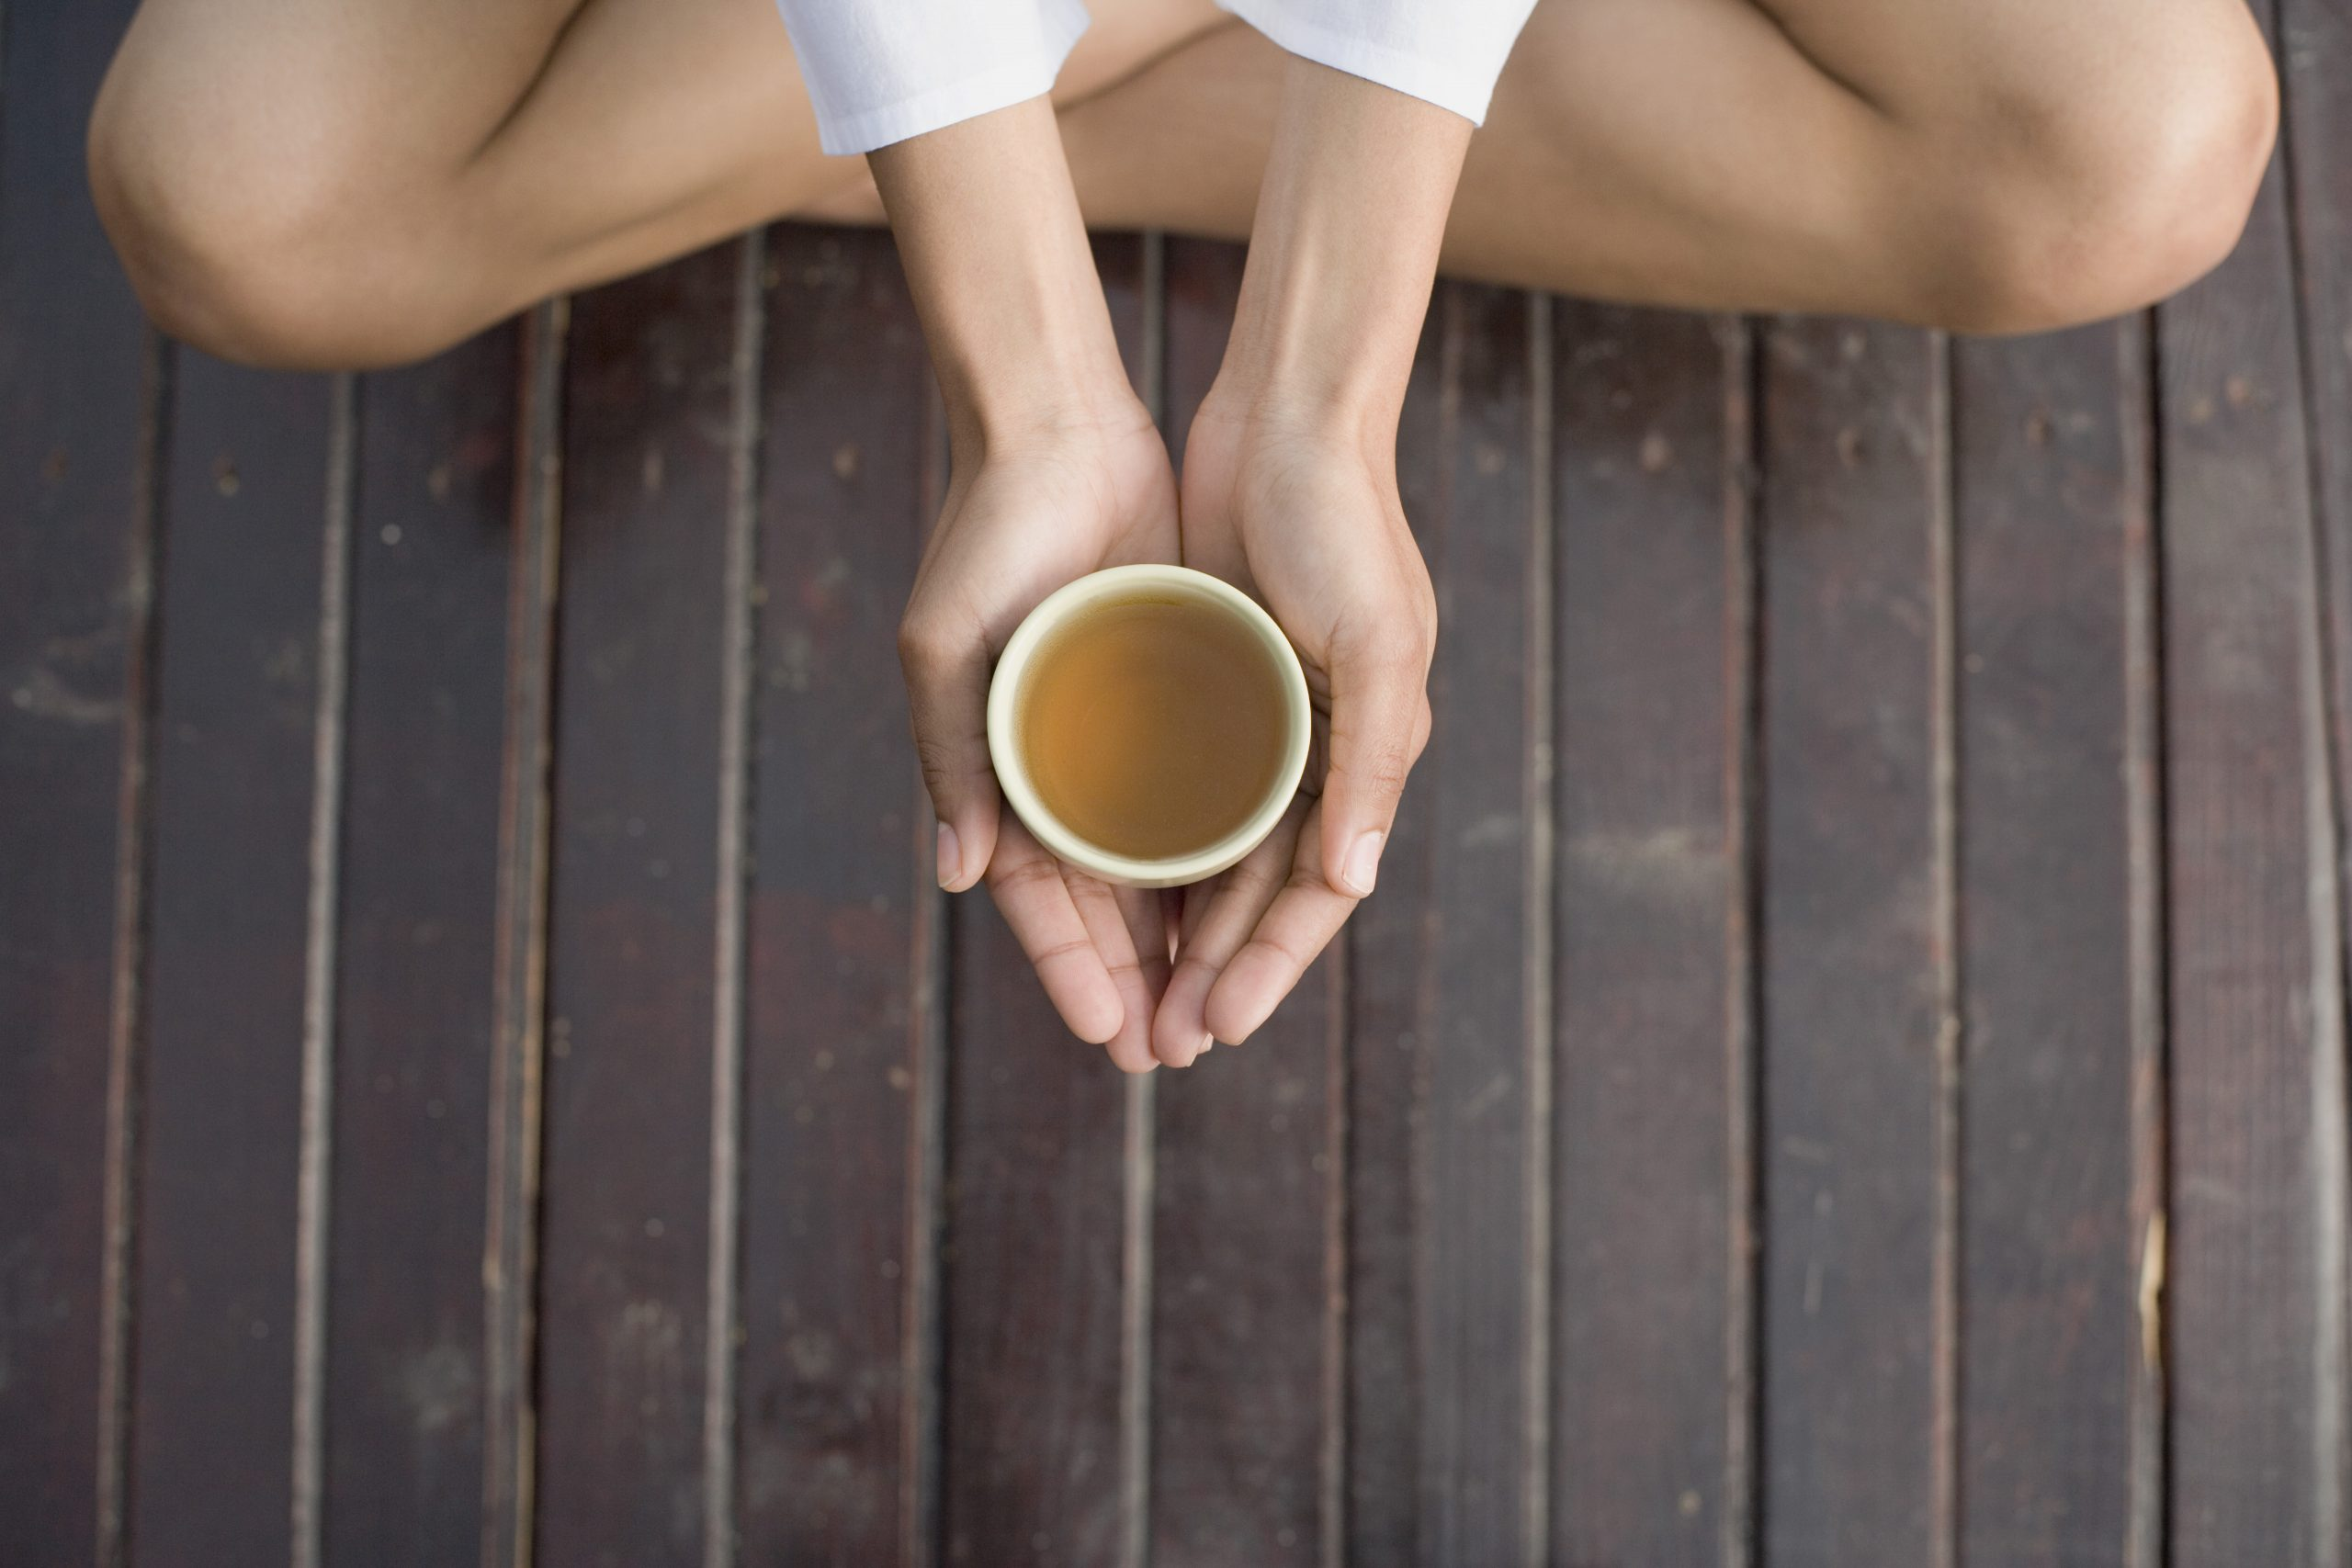 Person holding a cup of tea, wondering does tea have to be refrigerated